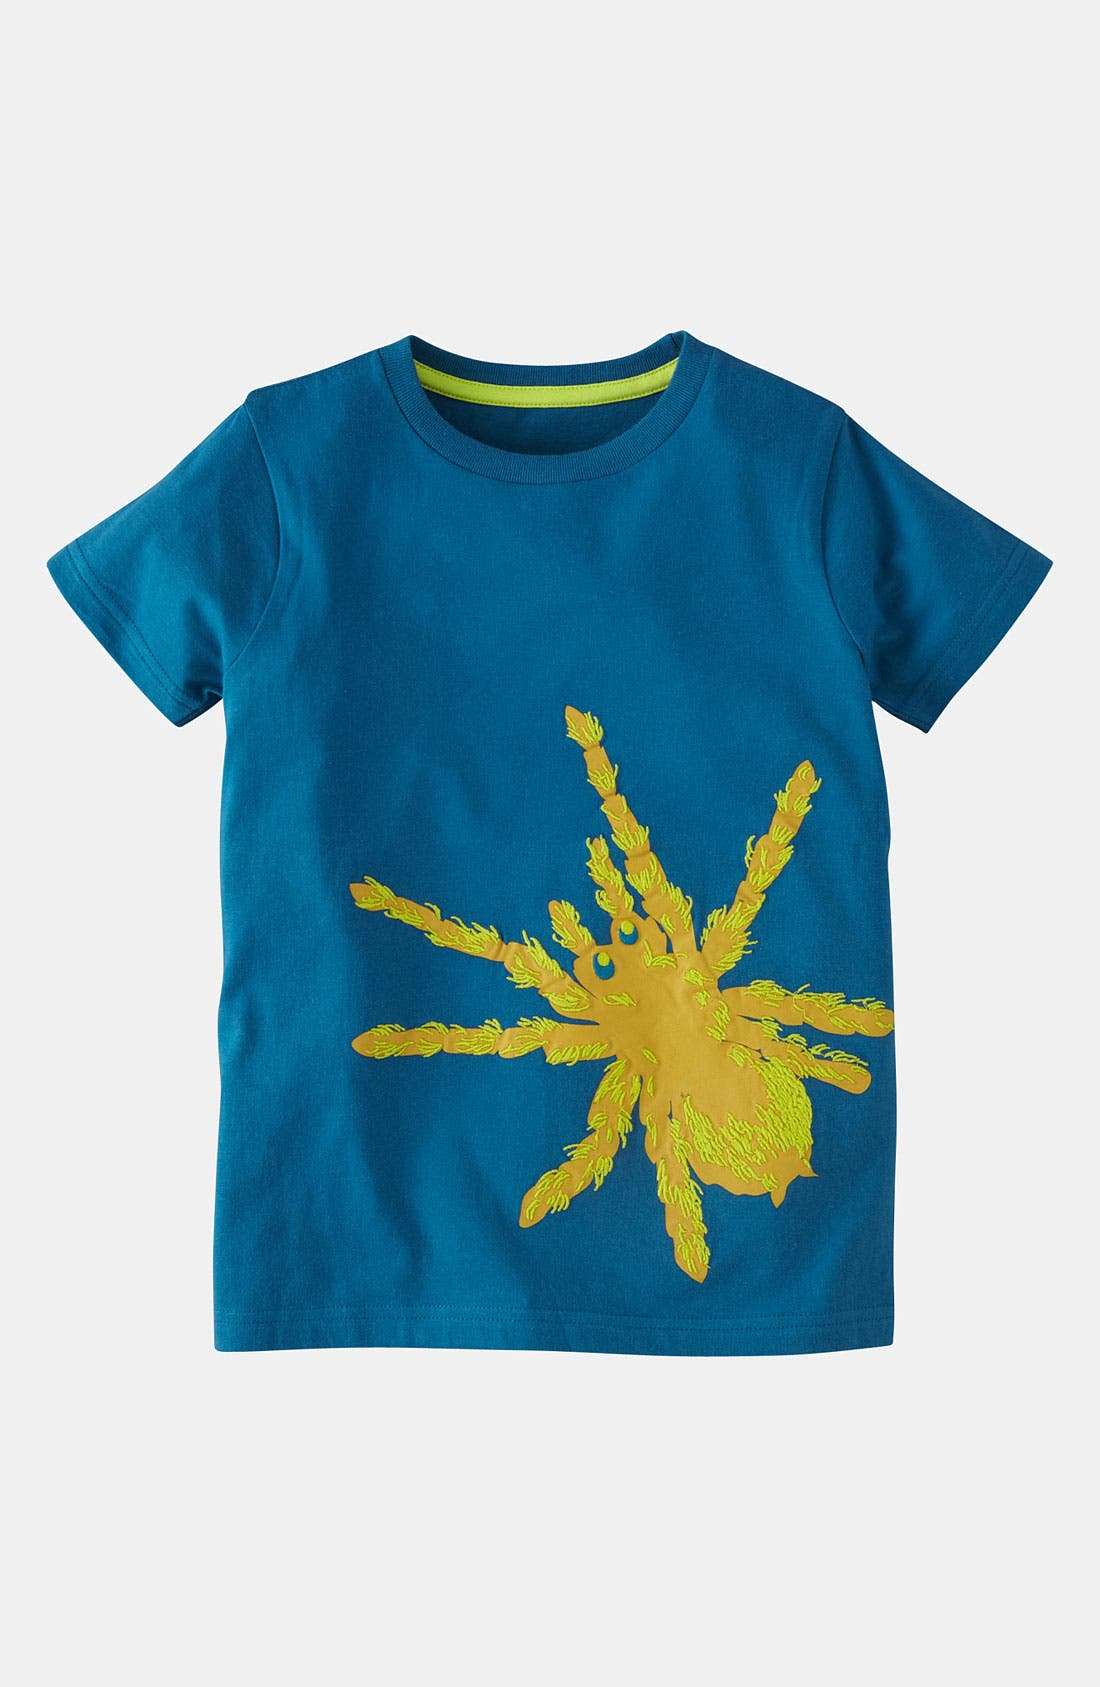 Alternate Image 1 Selected - Mini Boden 'Print & Stitch' T-Shirt (Little Boys & Big Boys)